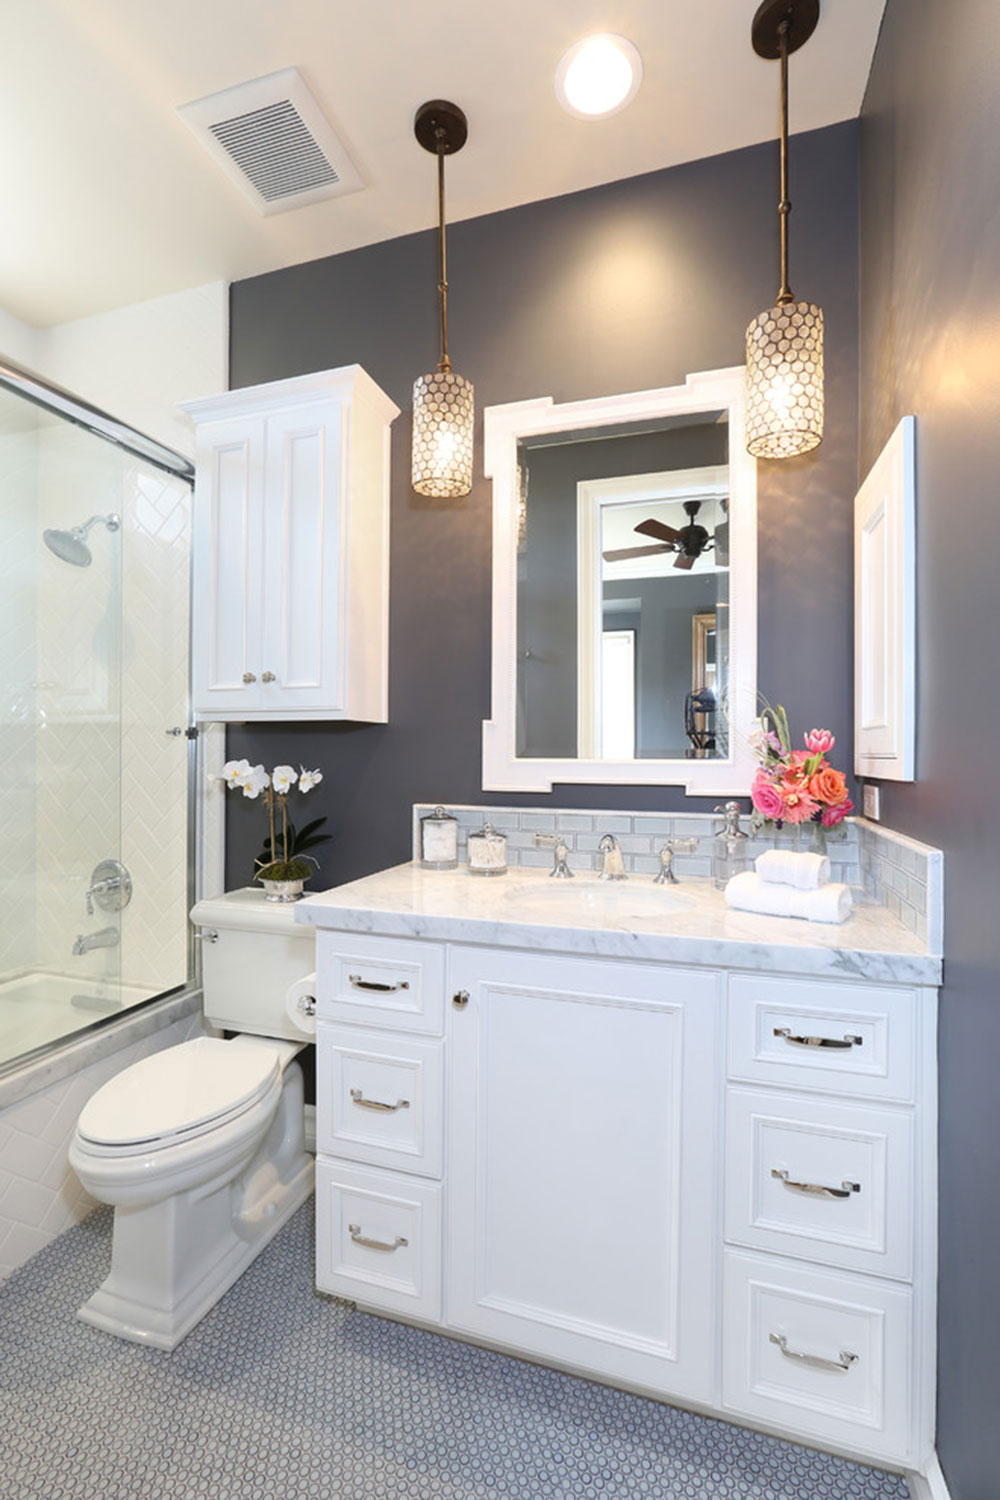 How To Make A Small Bathroom Look Bigger Tips And Ideas - Bathroom shower renovation for small bathroom ideas